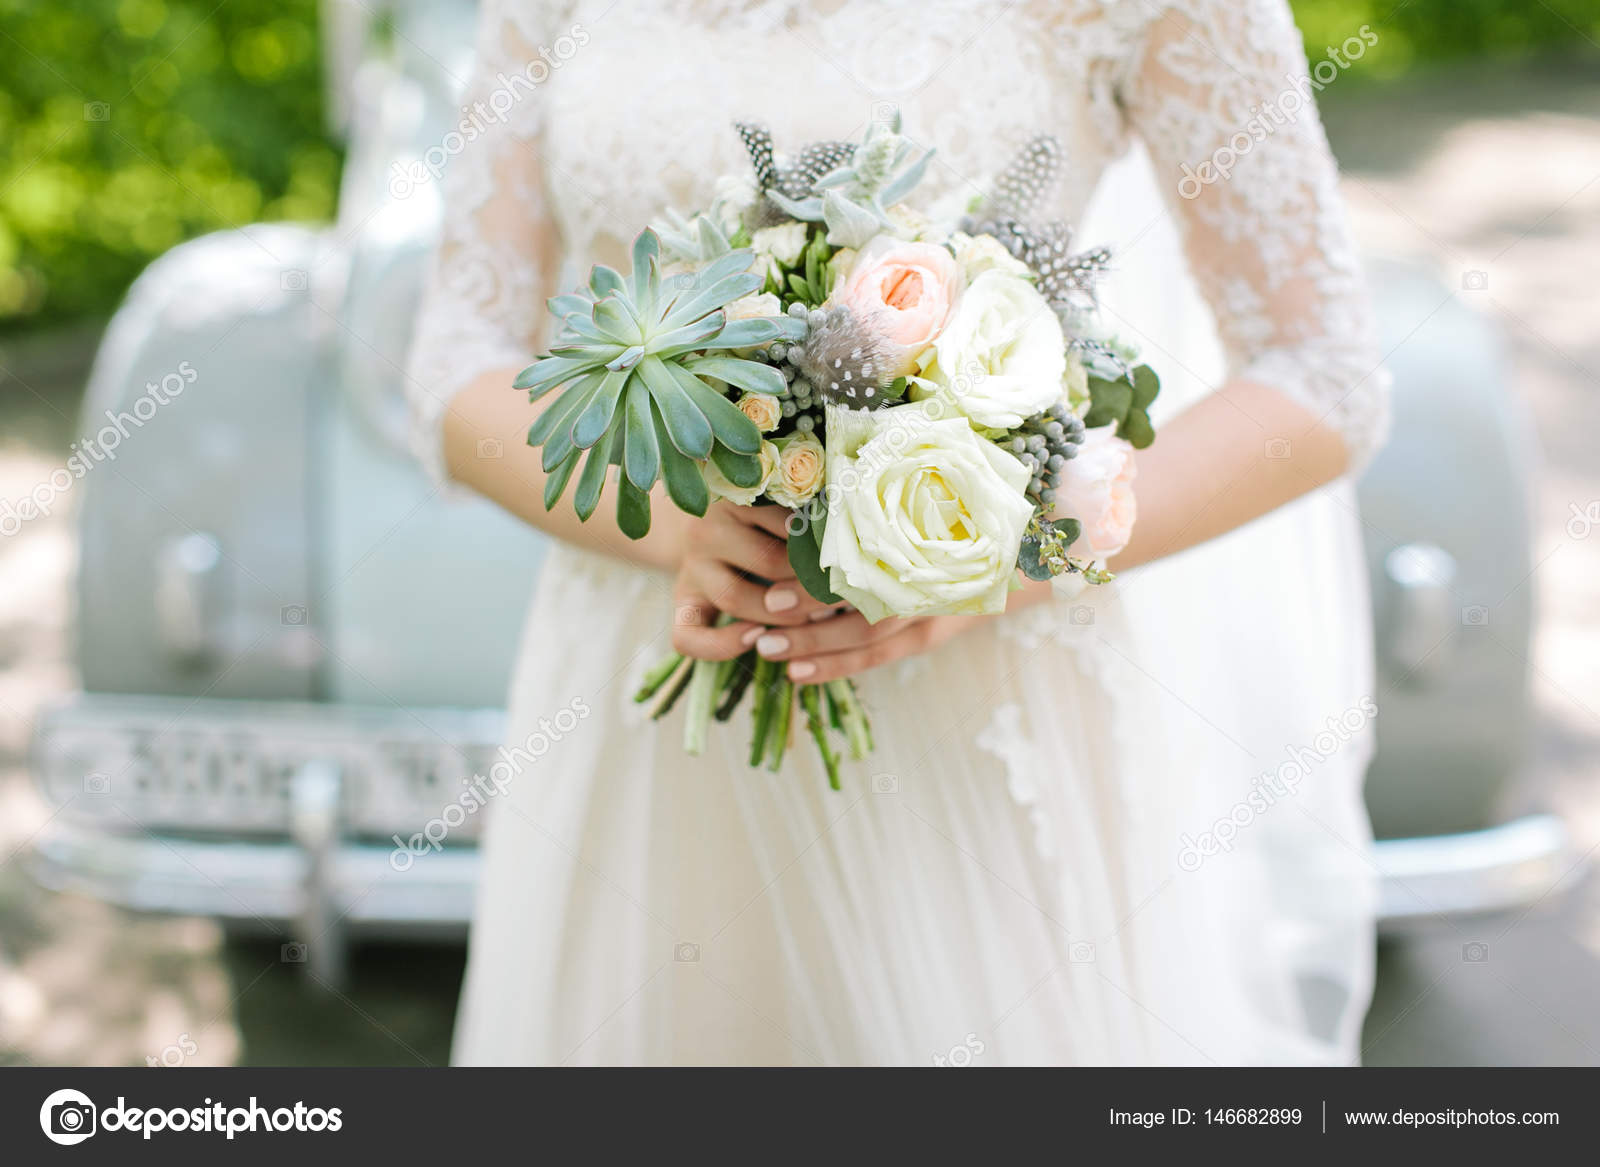 Beautiful Woman In A White Wedding Dress Holding A Flowers Bouquet